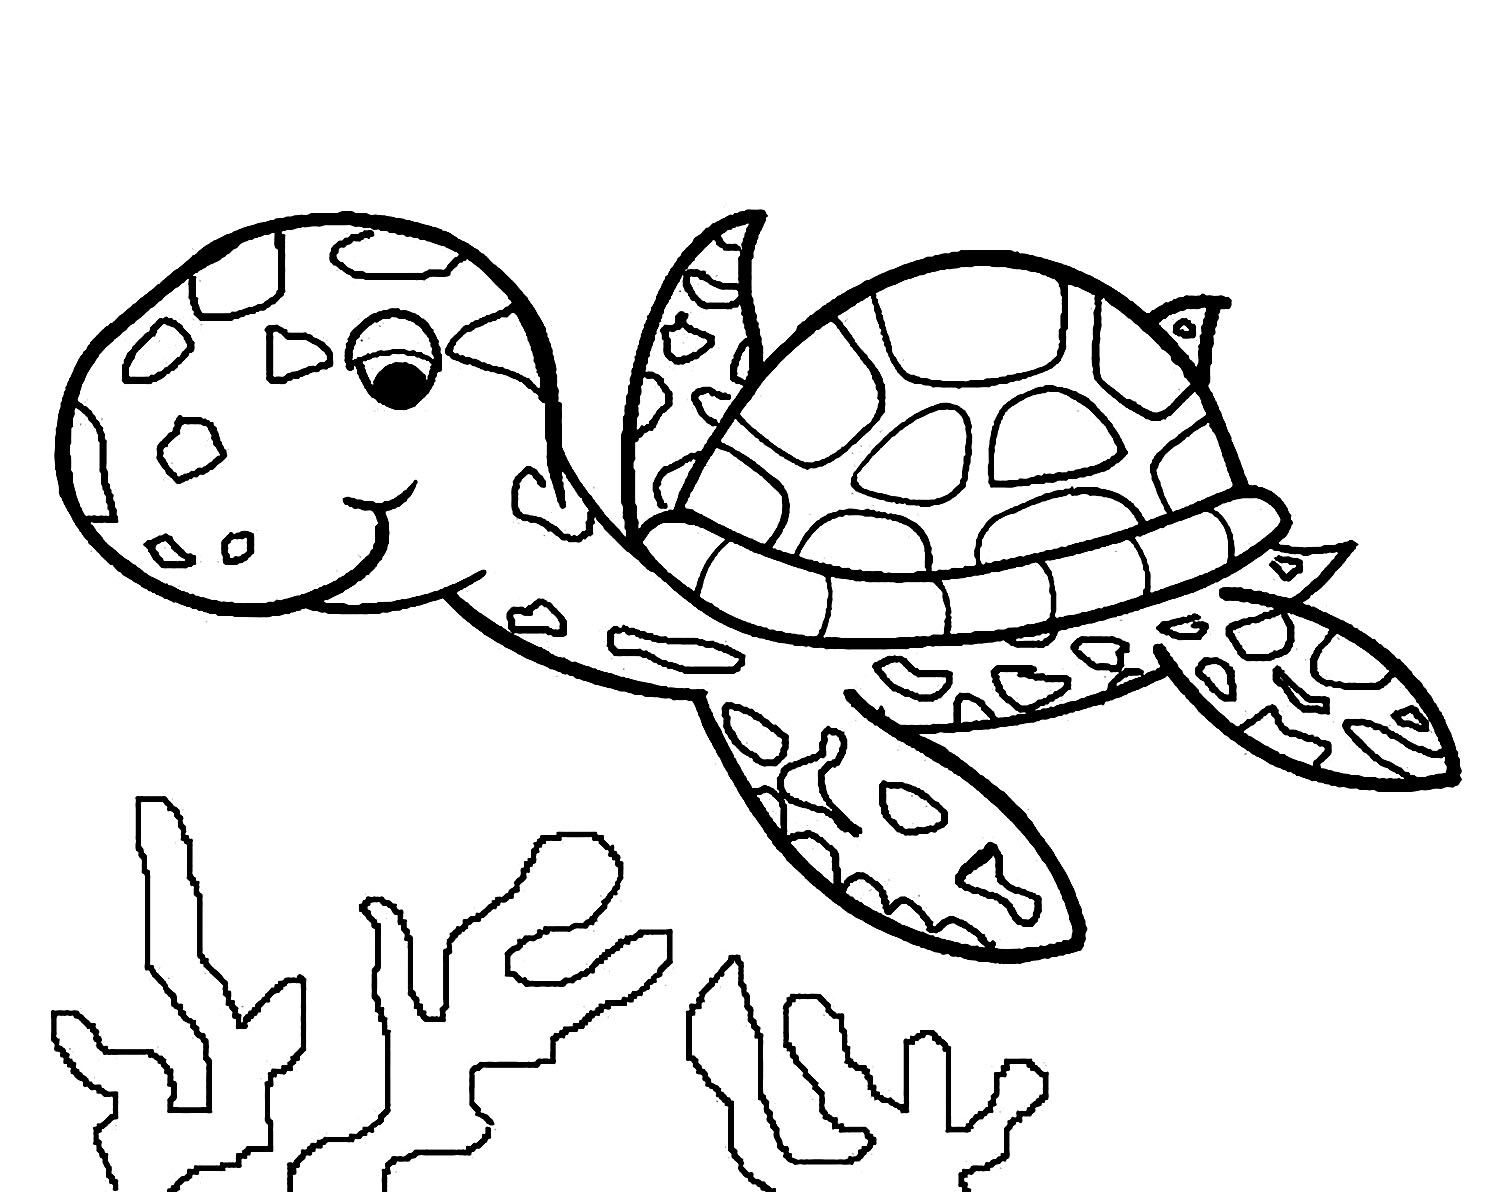 turtle coloring images coloring pages turtles free printable coloring pages turtle coloring images